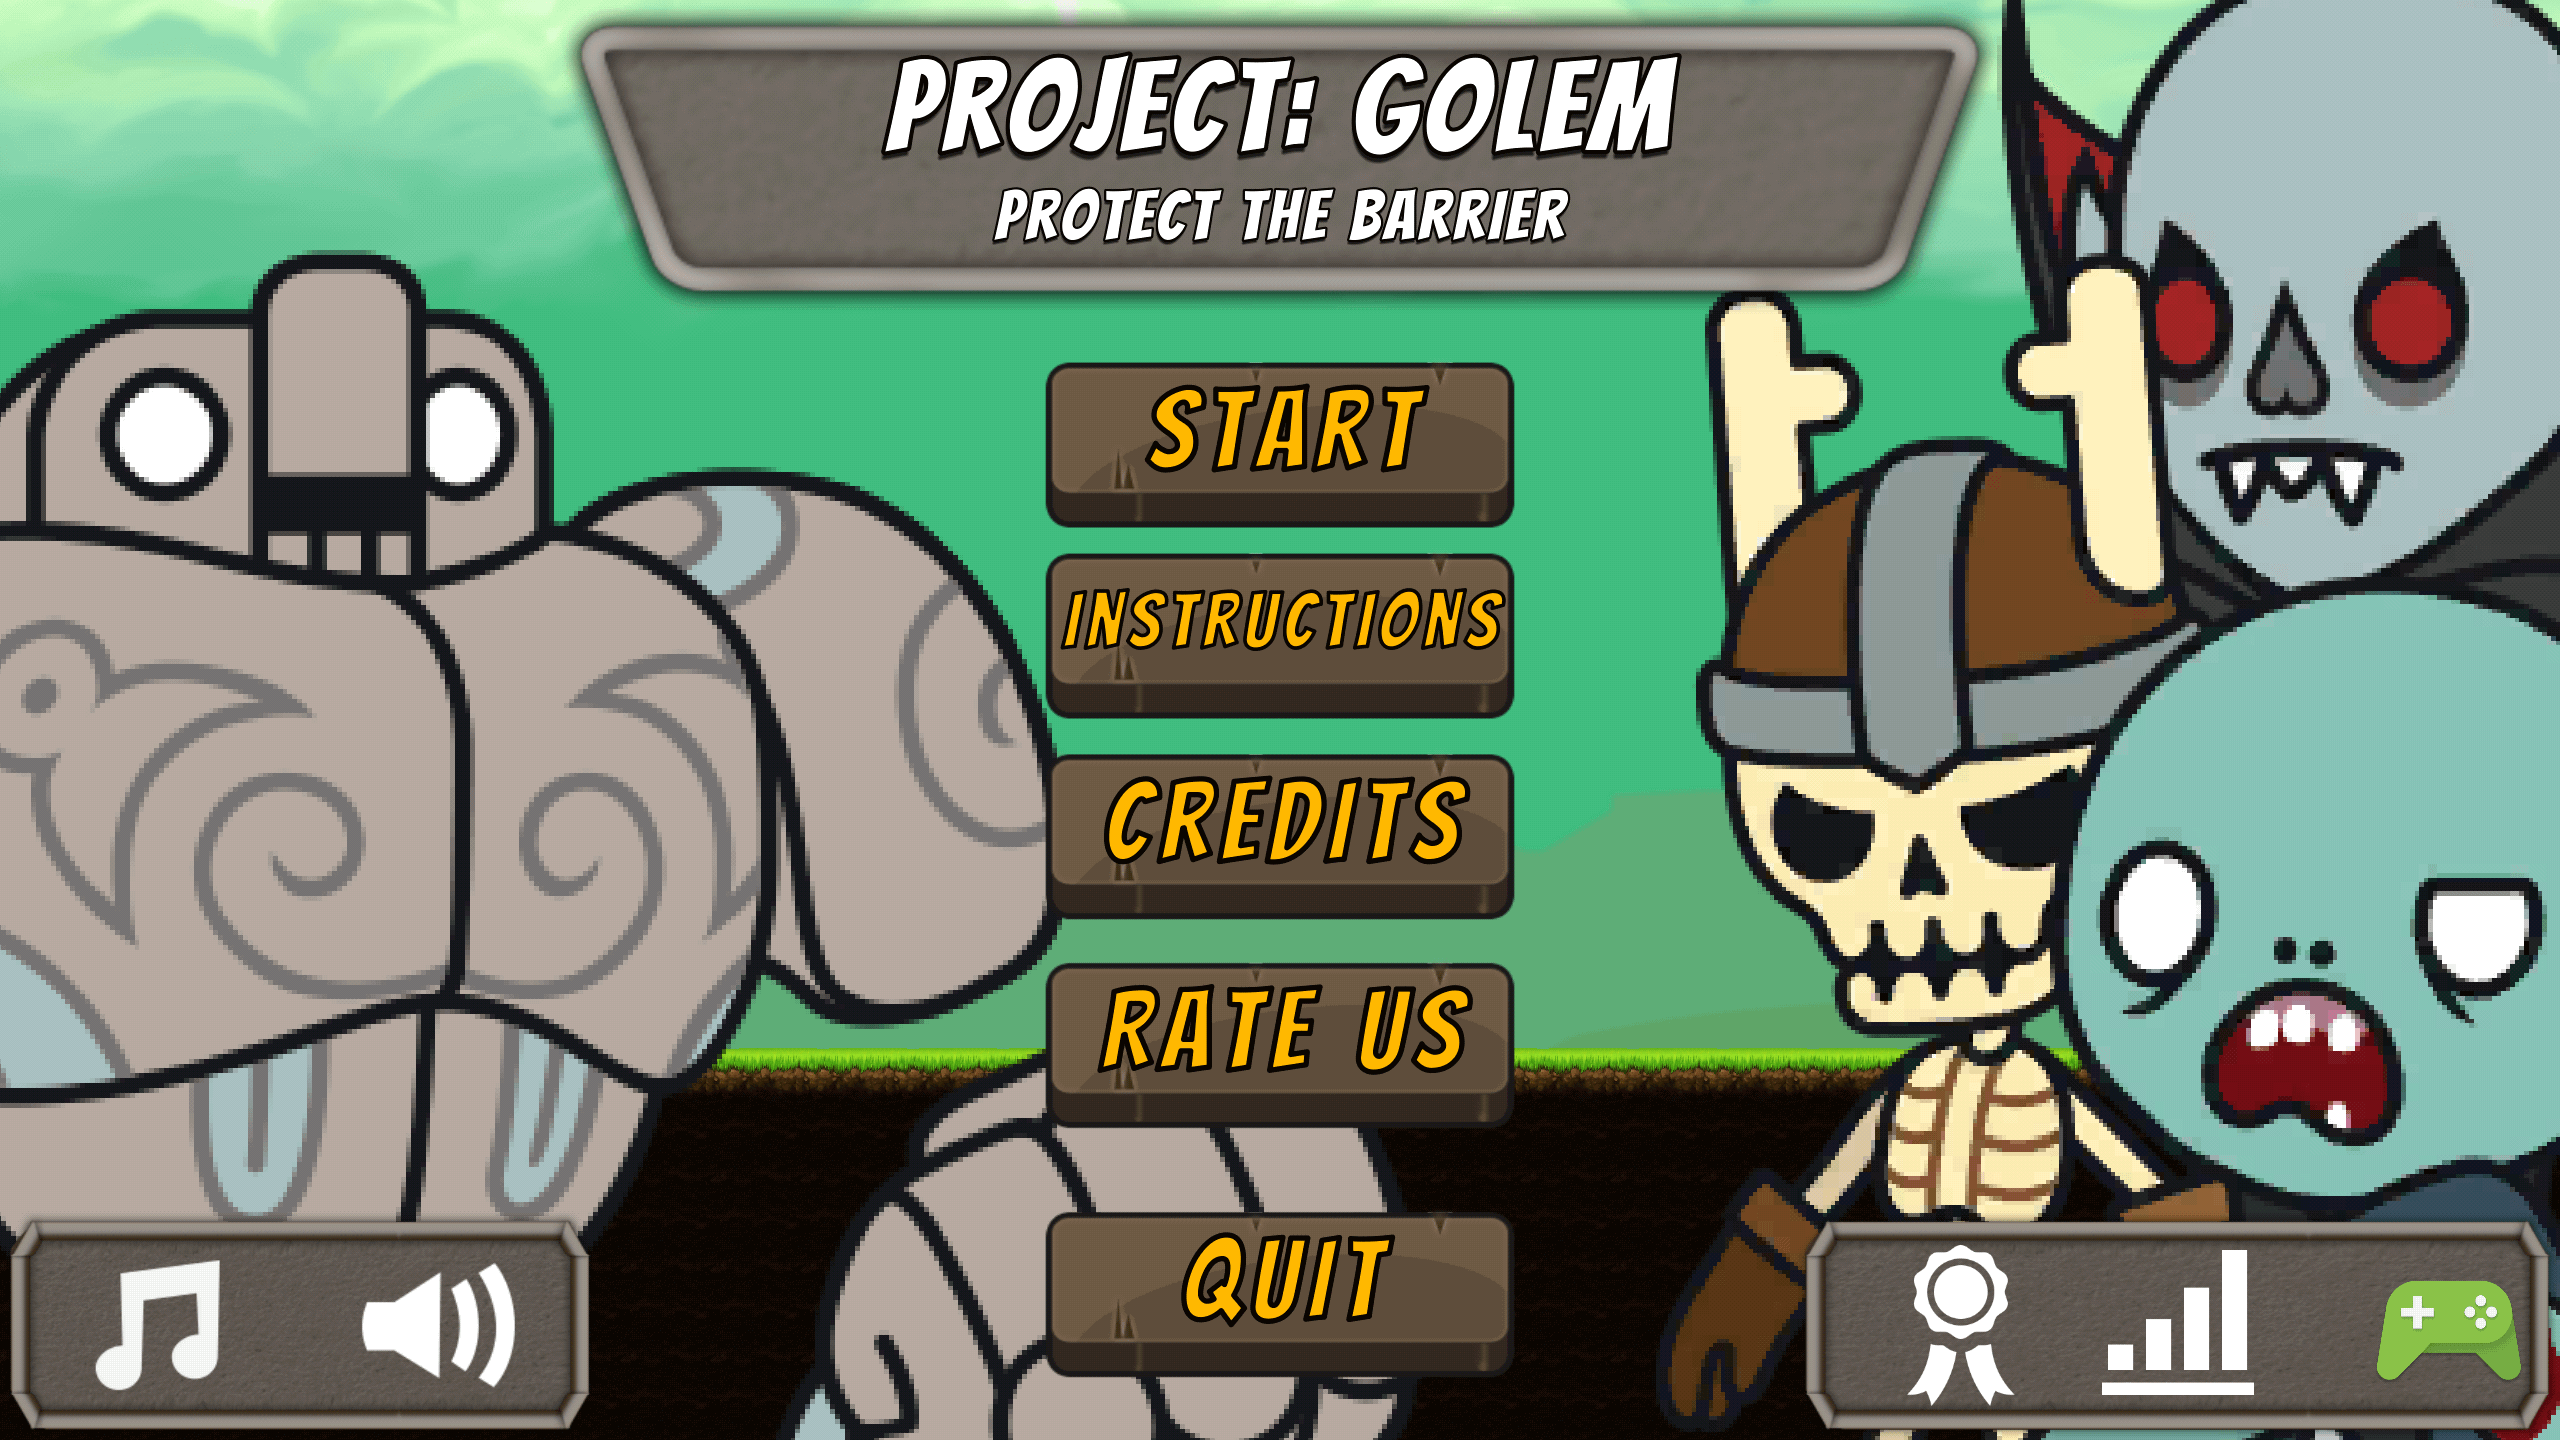 Project: Golem - Protect the Barrier